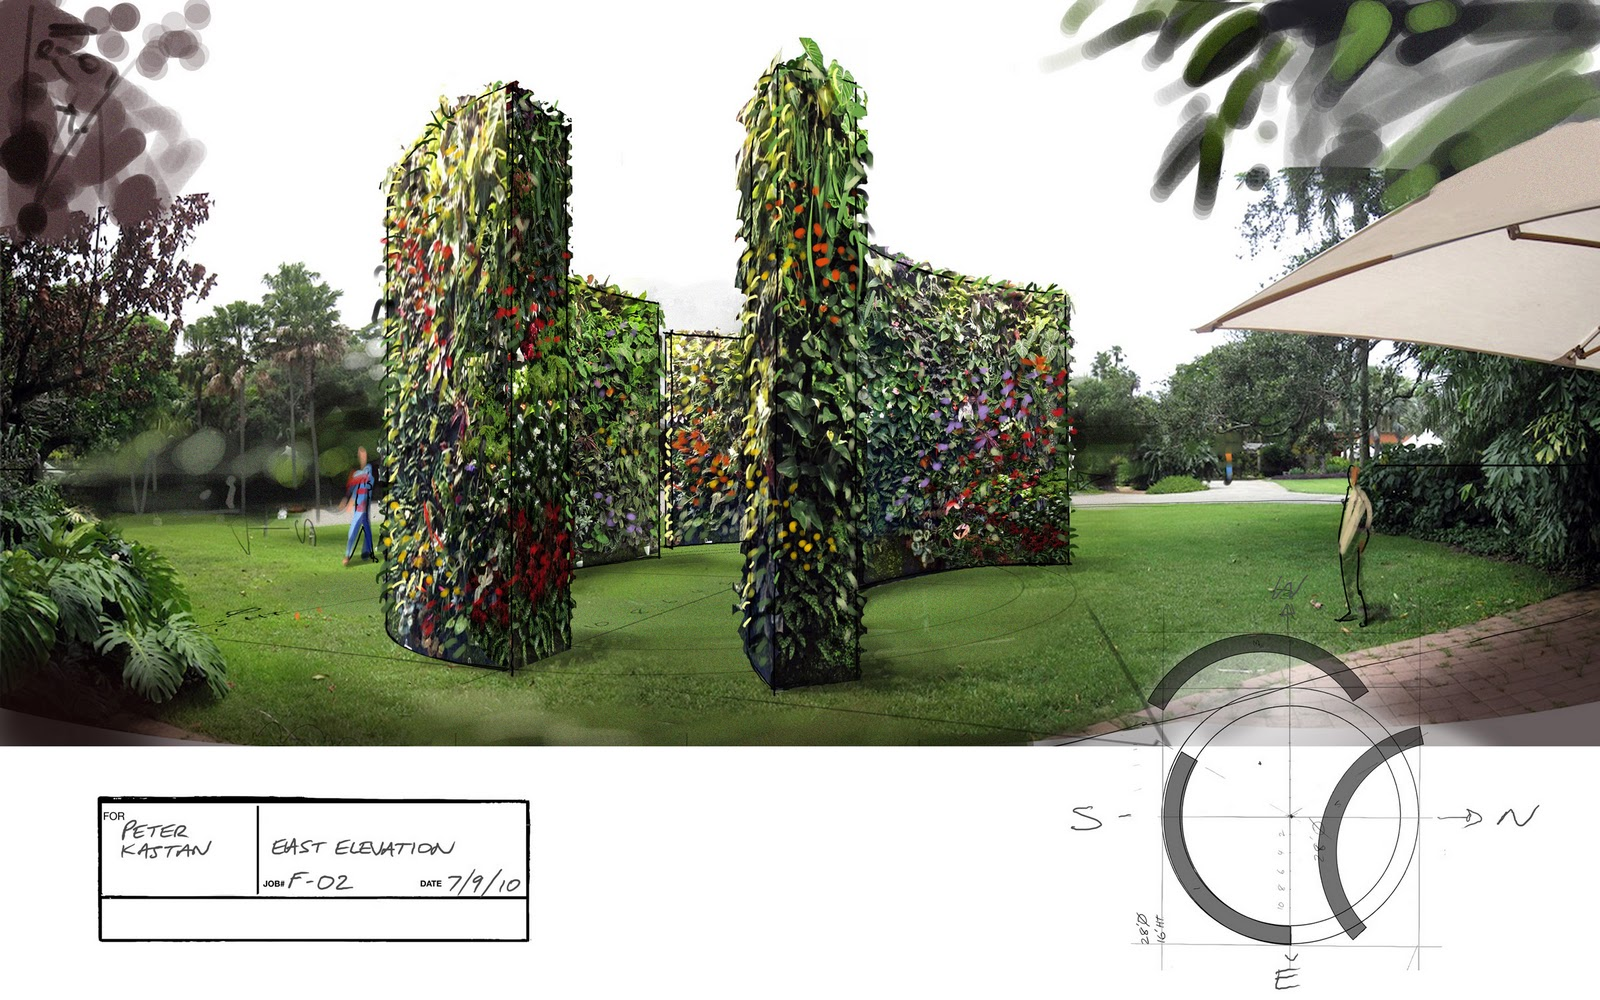 free standing vertical wall garden Free Standing Hydroponic Plant Wall Proposal for Park or